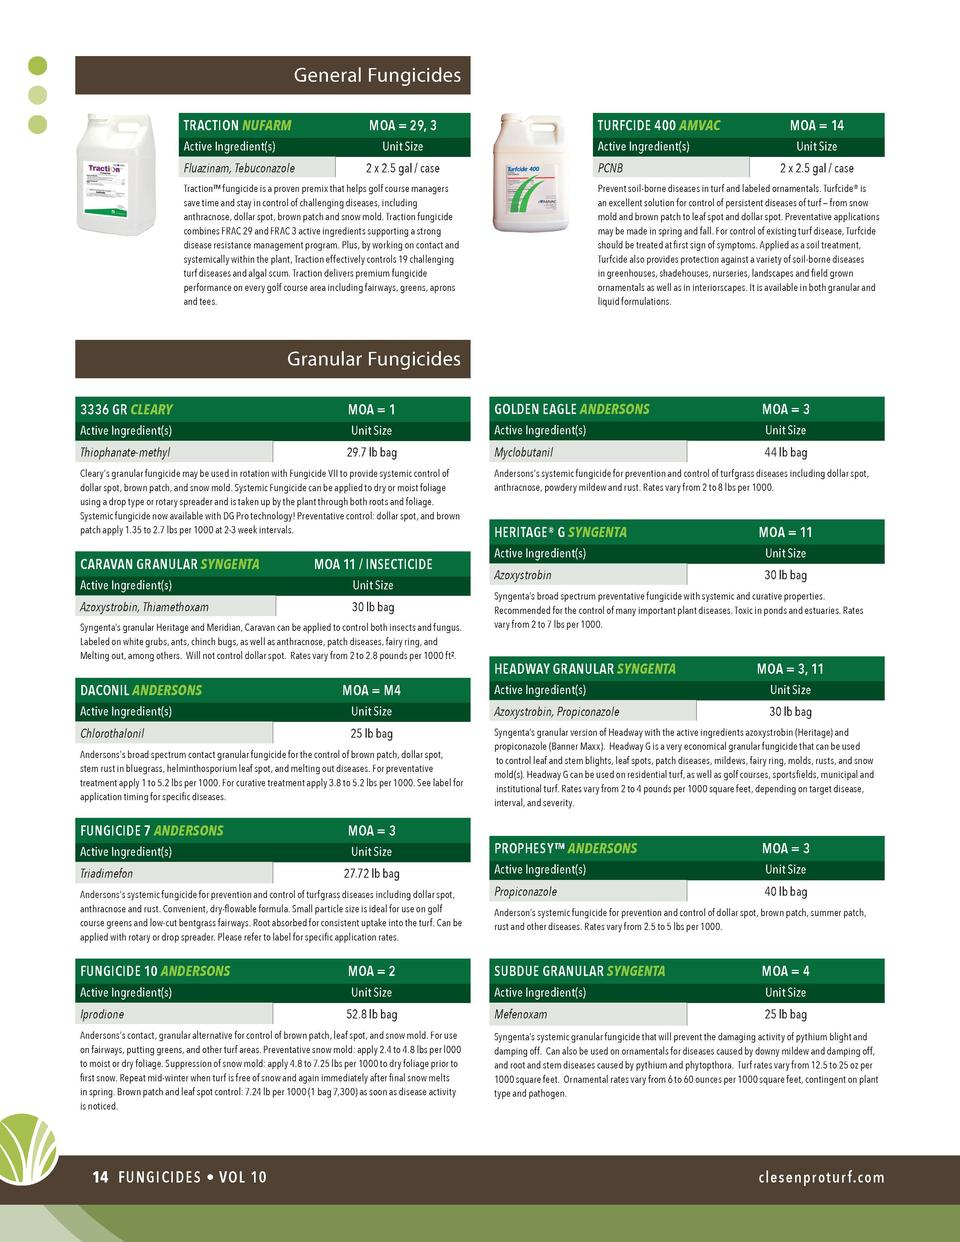 General Fungicides TRACTION NUFARM Active Ingredient s   MOA   29, 3  TURFCIDE 400 AMVAC  Unit Size  Fluazinam, Tebuconazo...